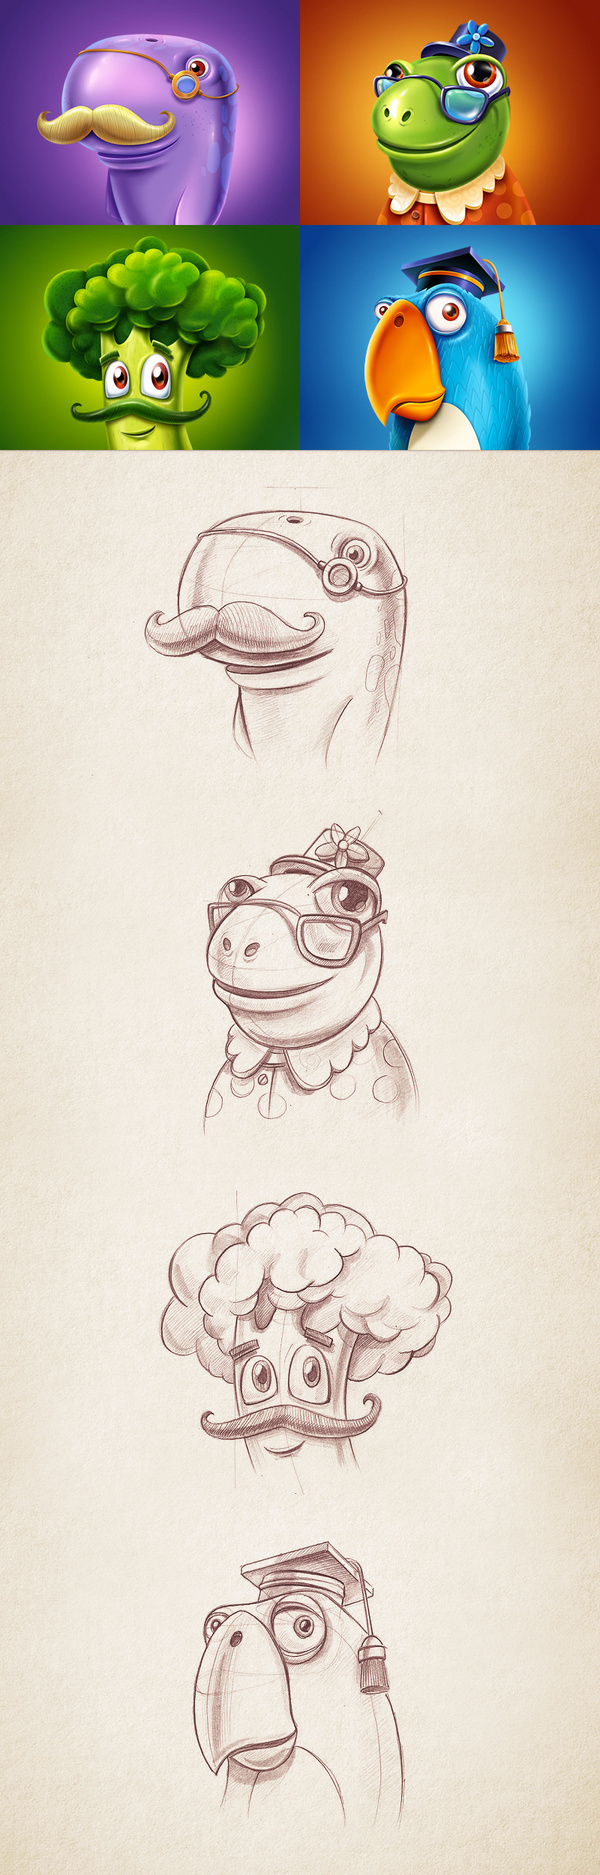 Game characters #design #realistic #cartoon #game #character #sketch